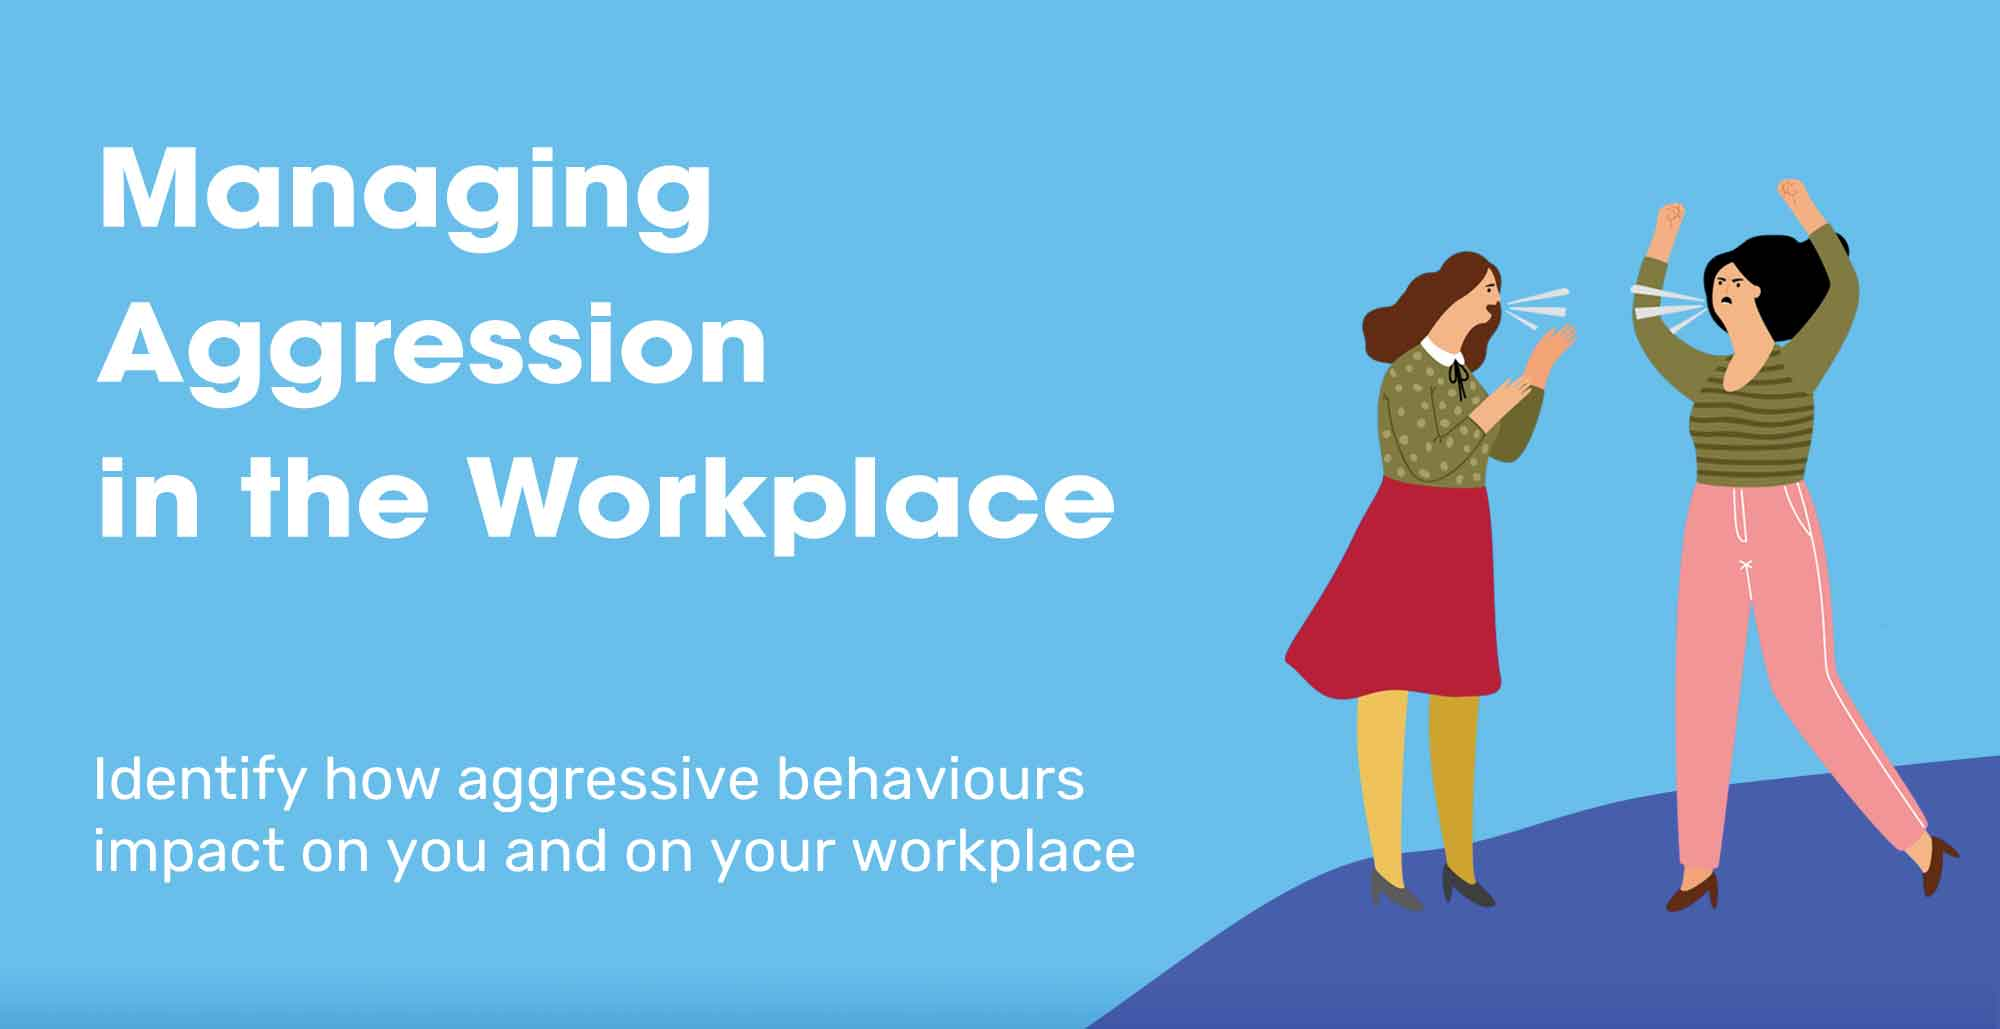 Cover image for: 'Managing Aggression in the Workplace'